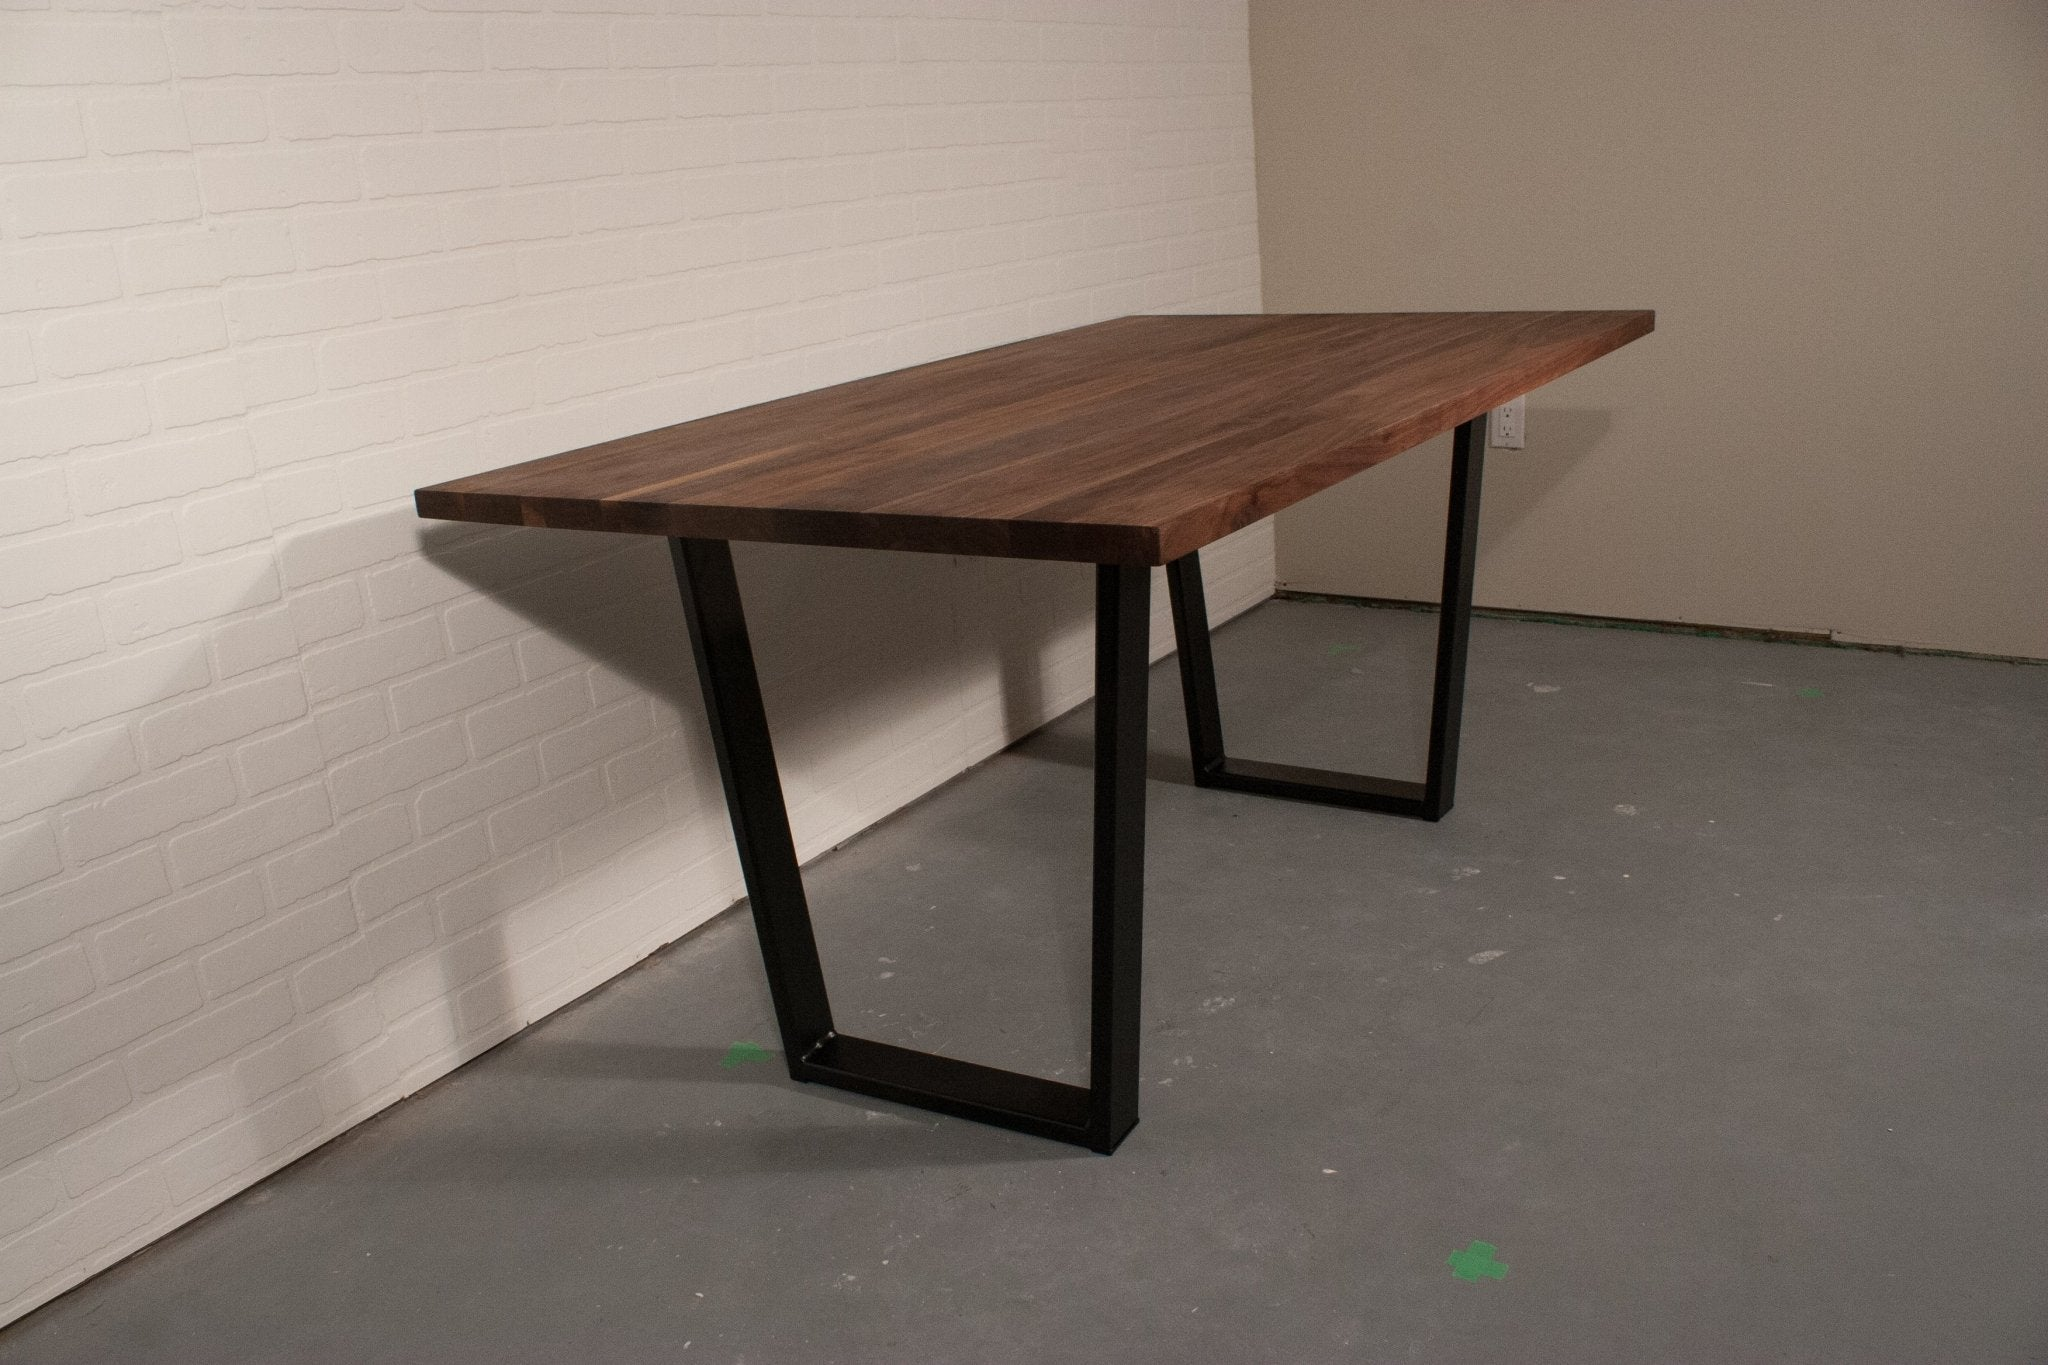 Natural Walnut Dining Table - Loewen Design Studios